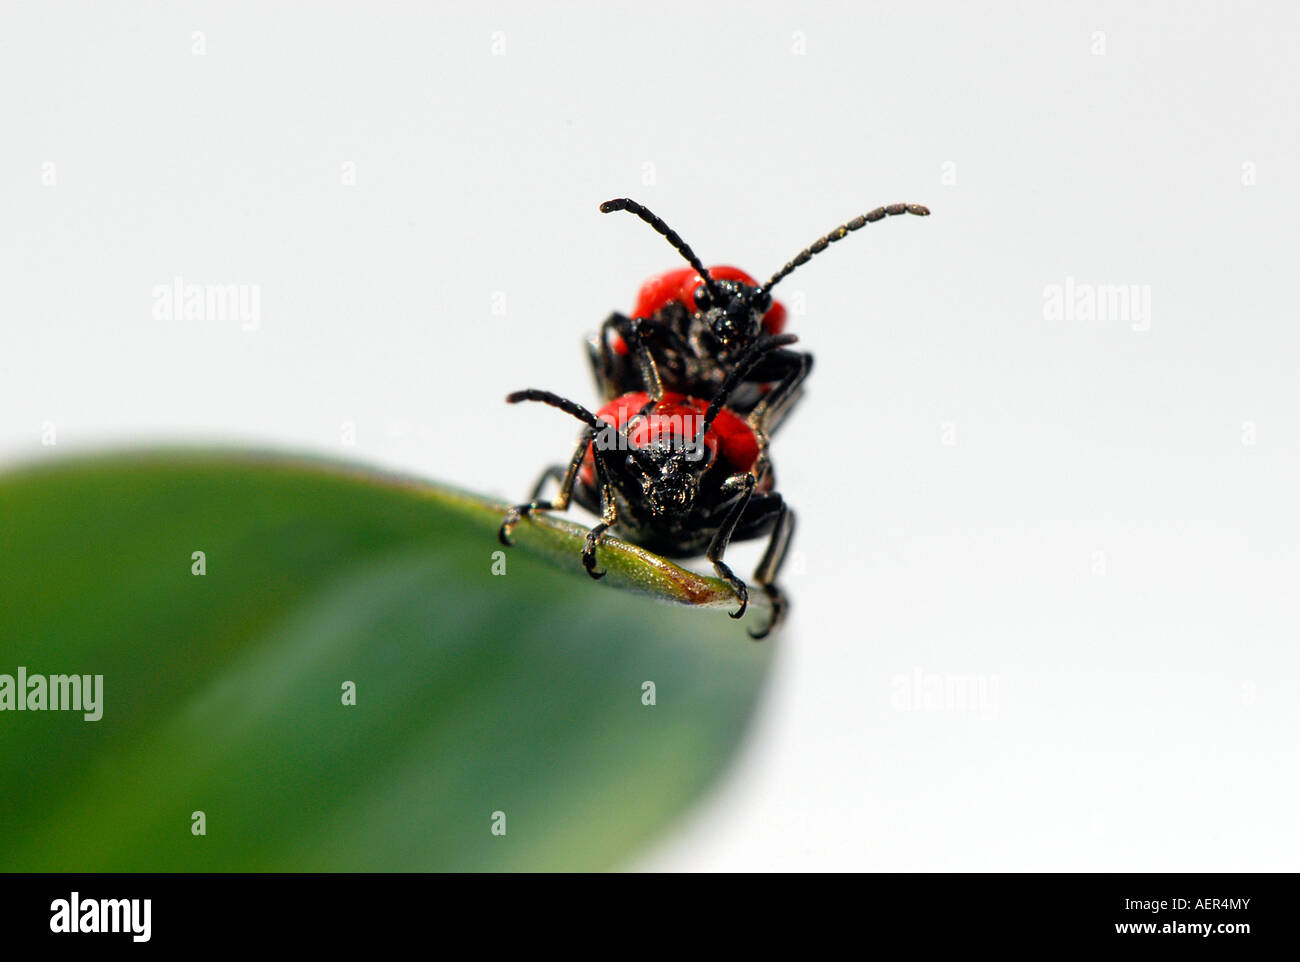 Two Bugs On A Leaf Stock Photos Amp Two Bugs On A Leaf Stock